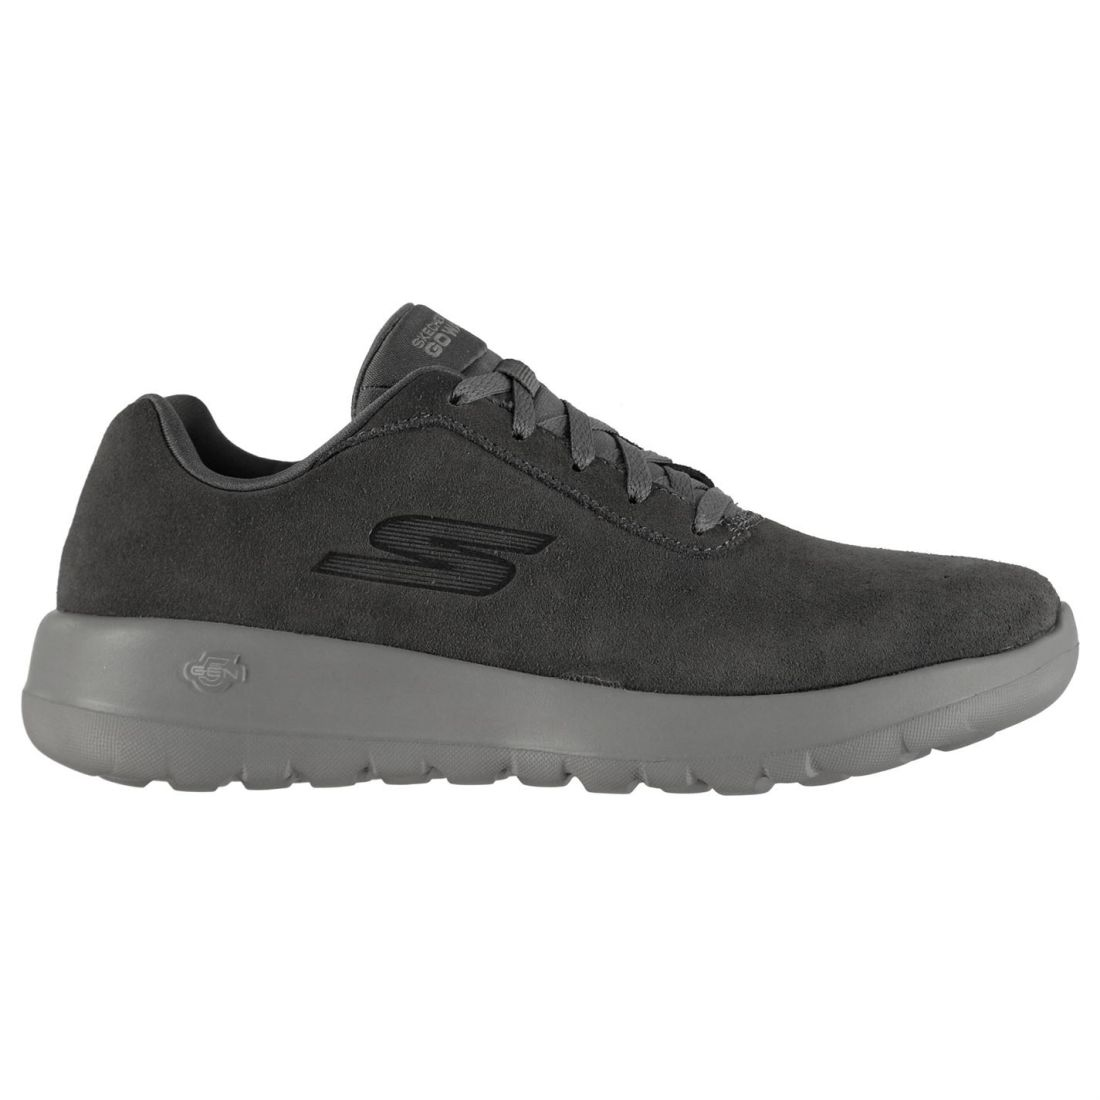 Skechers Go Walk Joy Evalute Evalute Evalute Sneakers Ladies Everyday shoes Laces Fastened 0bfc56